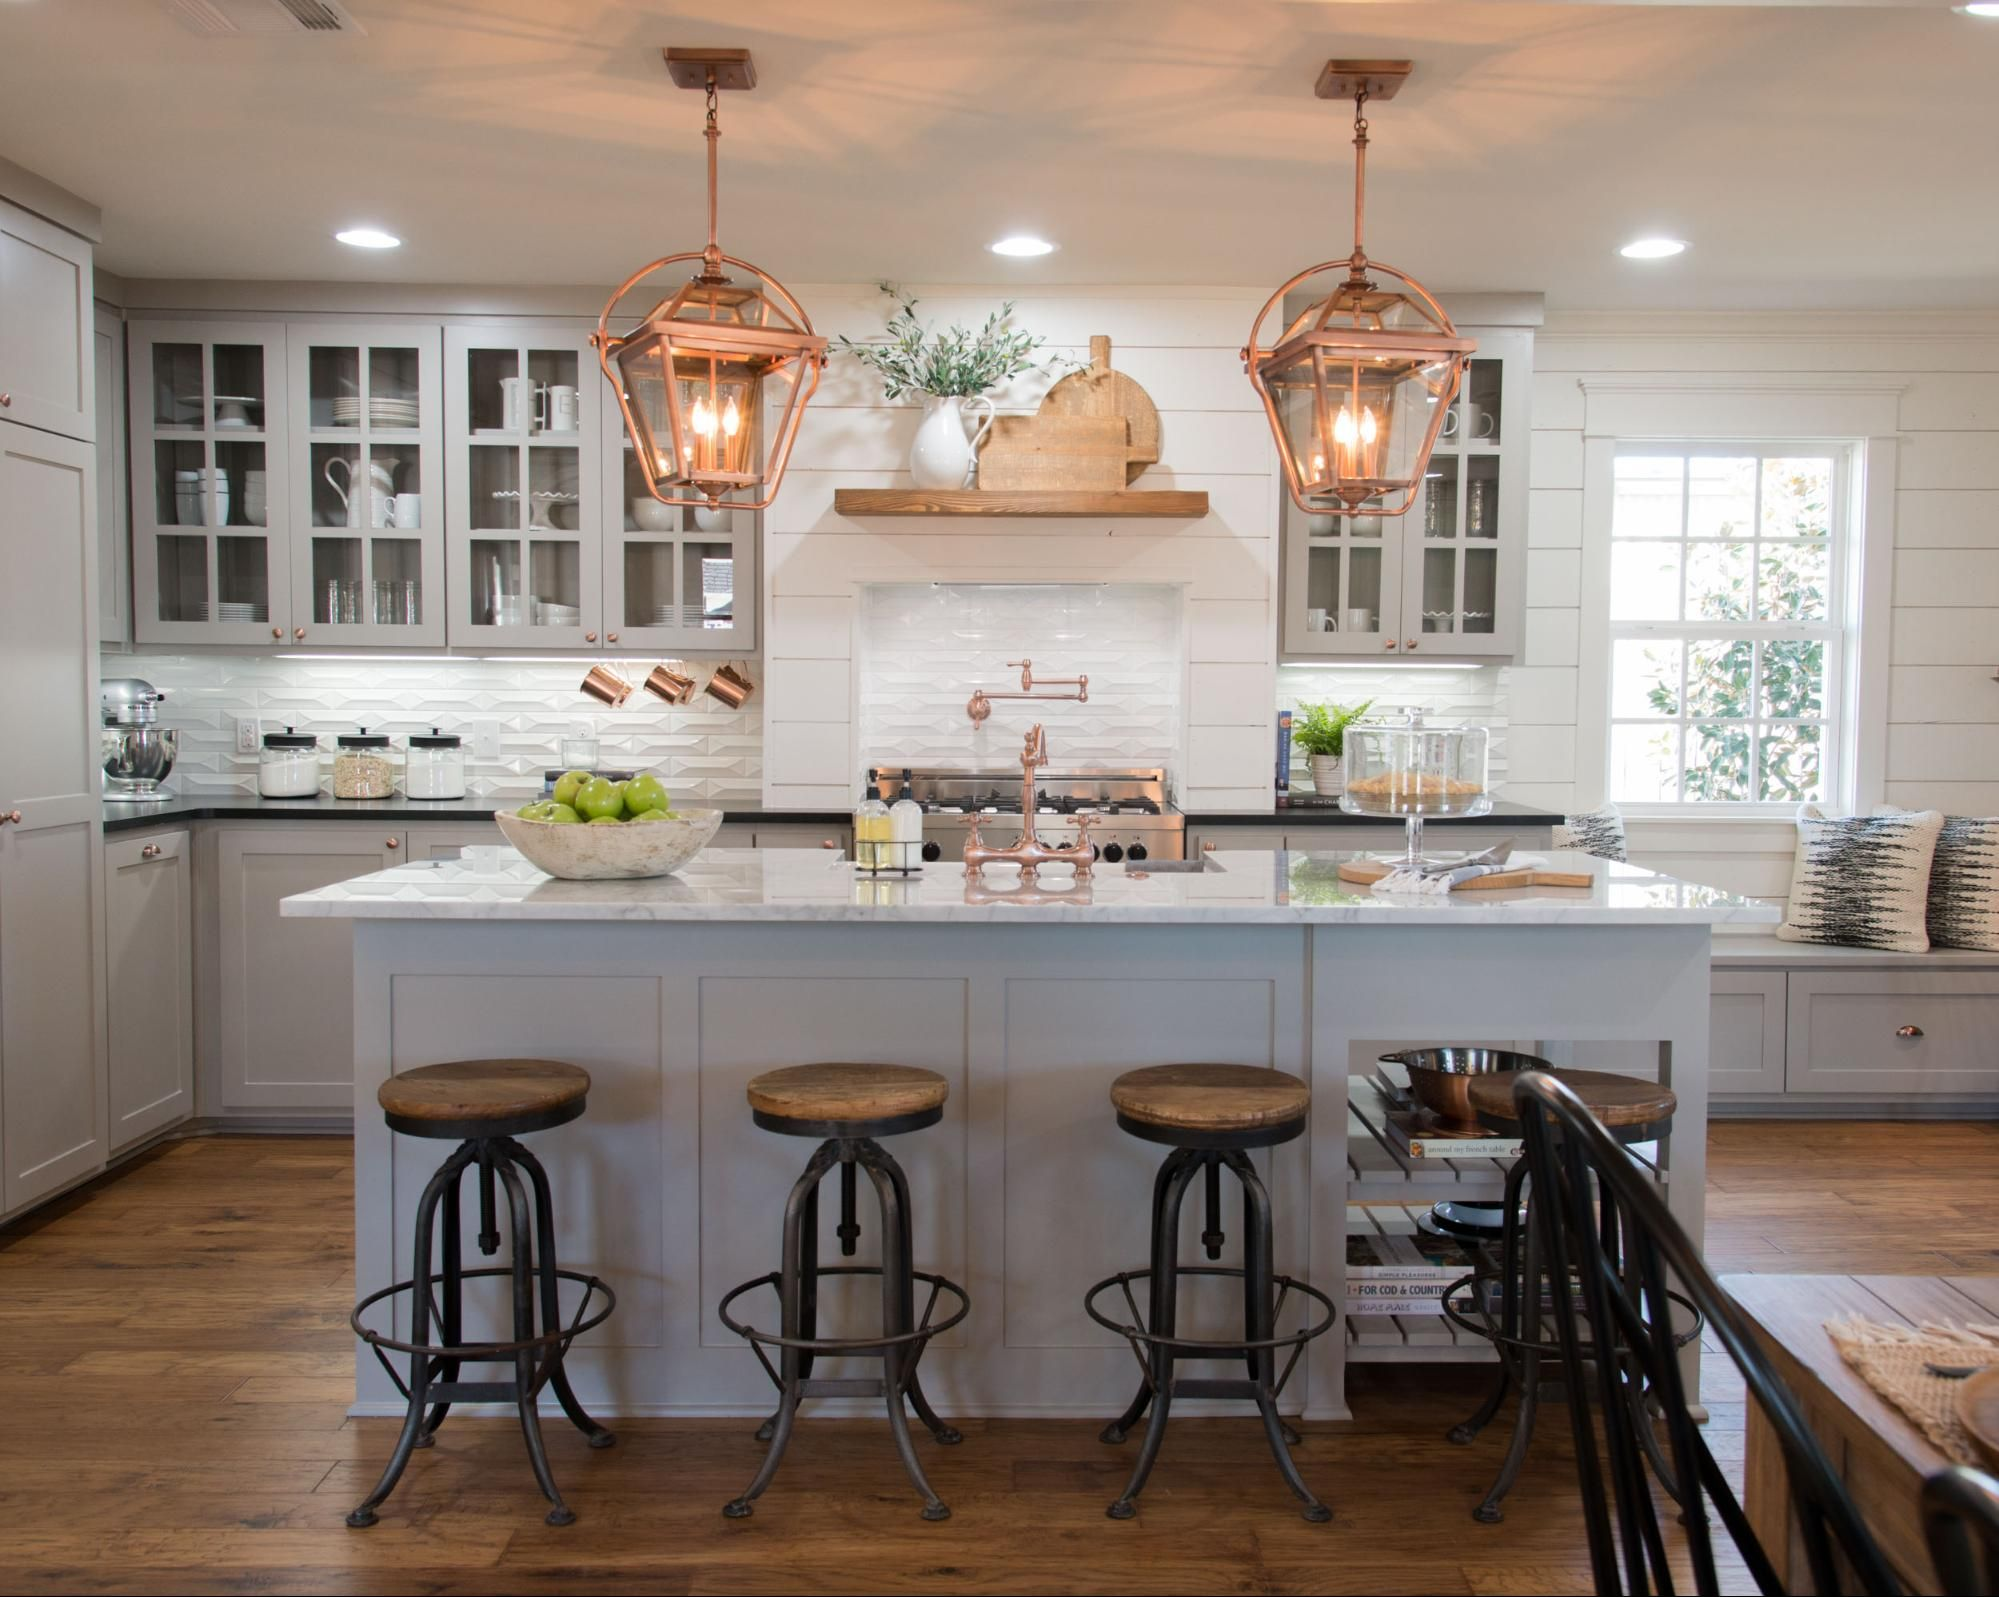 Fixer upper double kitchen island - White And Gray Kitchen Copper Light Fixtures White Washed Shiplap In Kitchen Bar